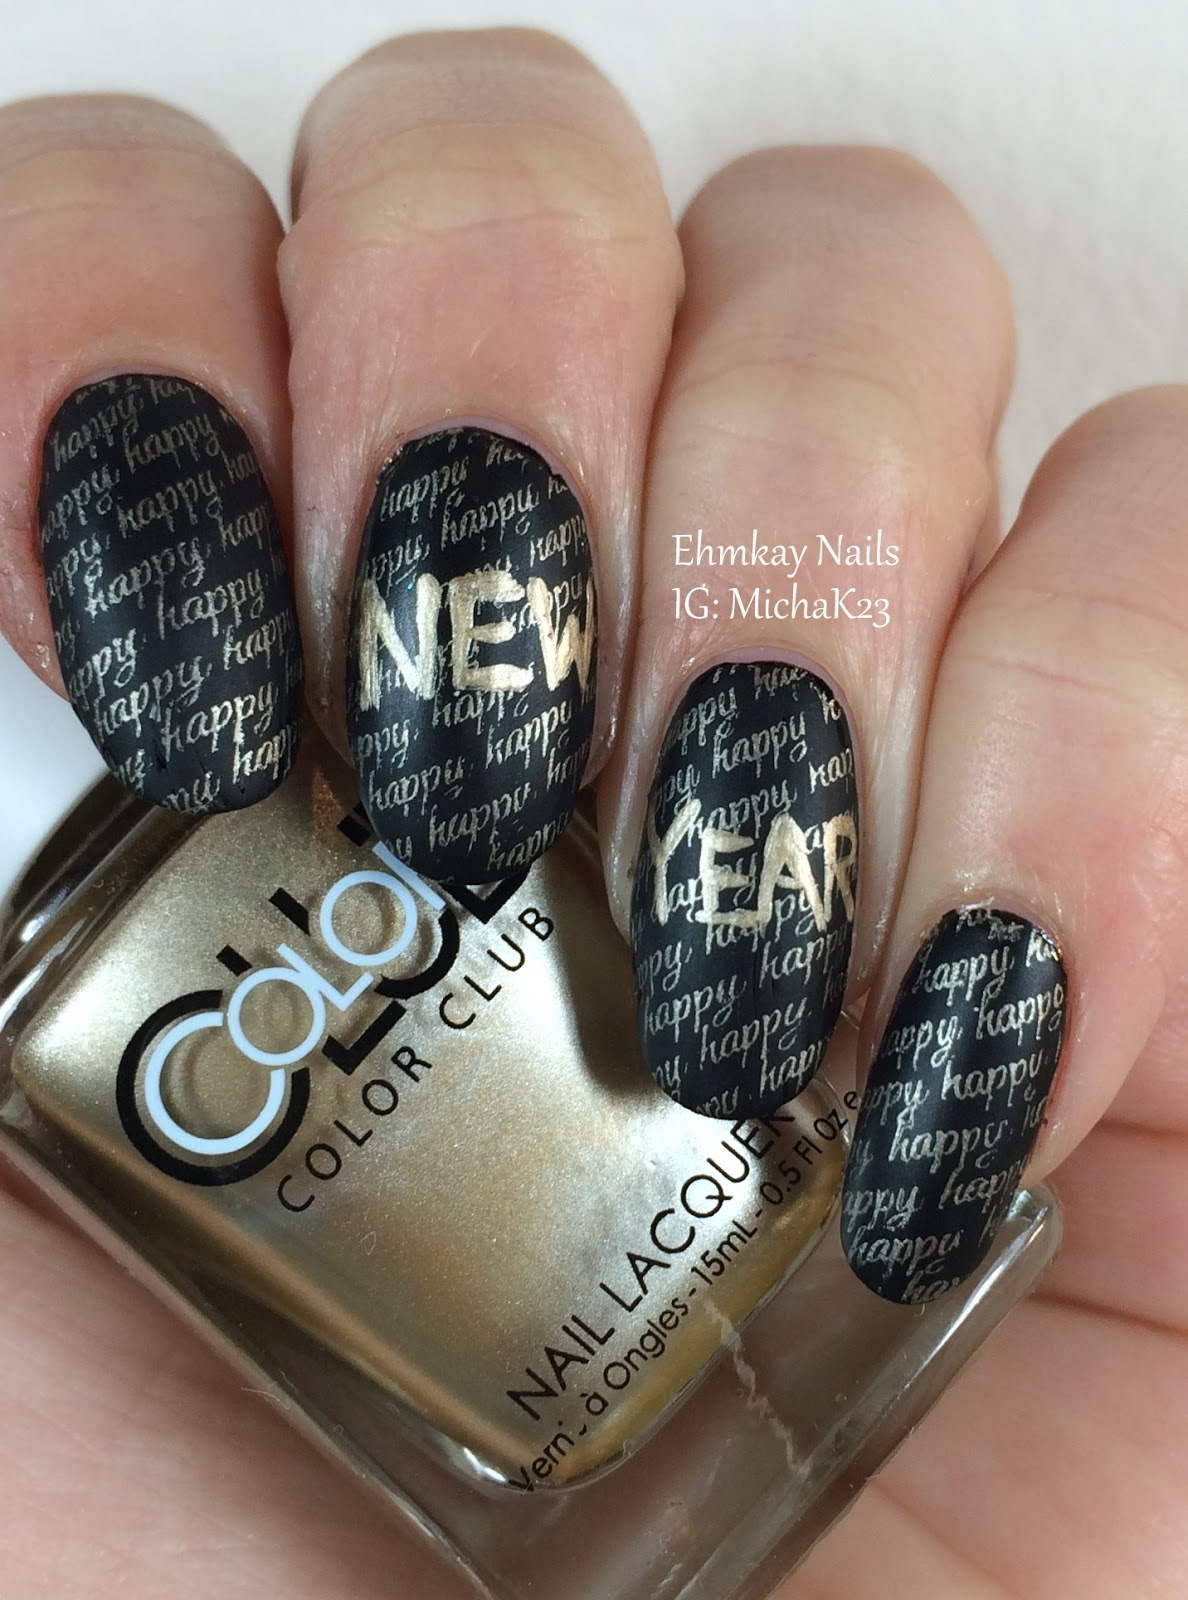 ehmkay nails: Happy New Year's Eve Nail Art Stamping